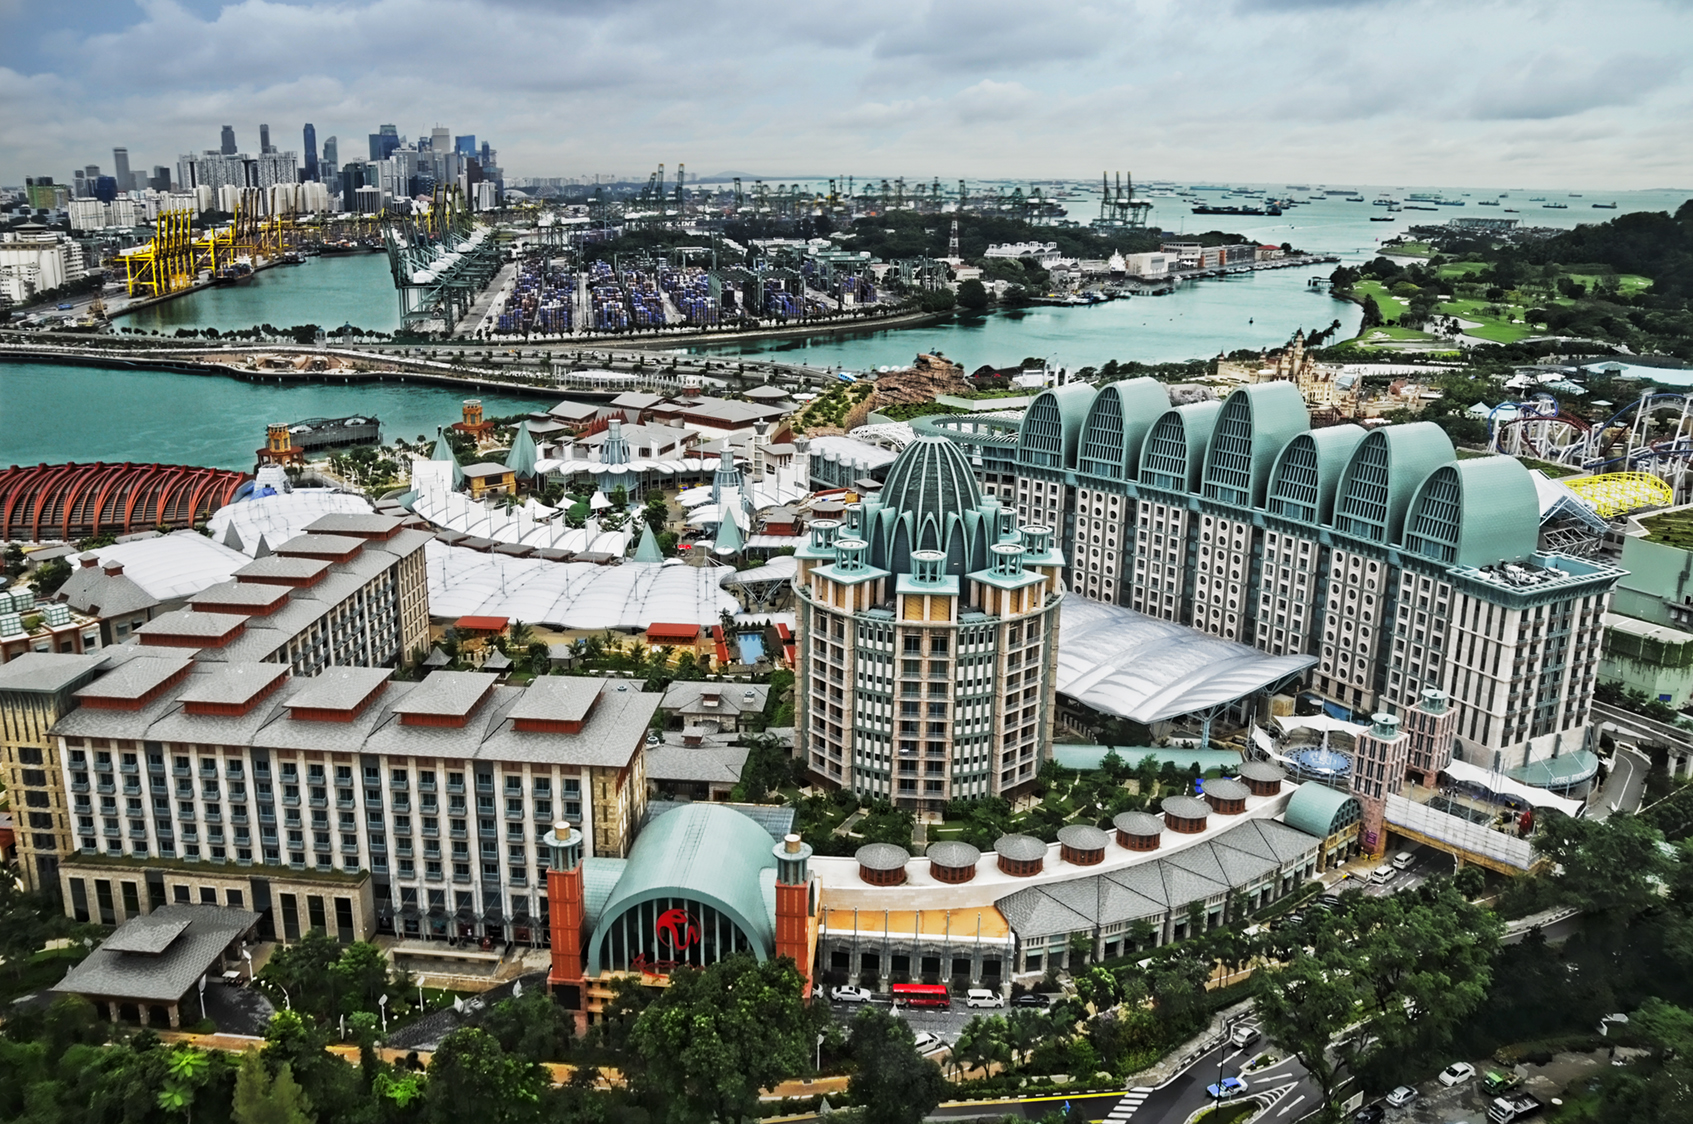 Universal Studios Singapore - Ticket Prices, Opening Hours etc